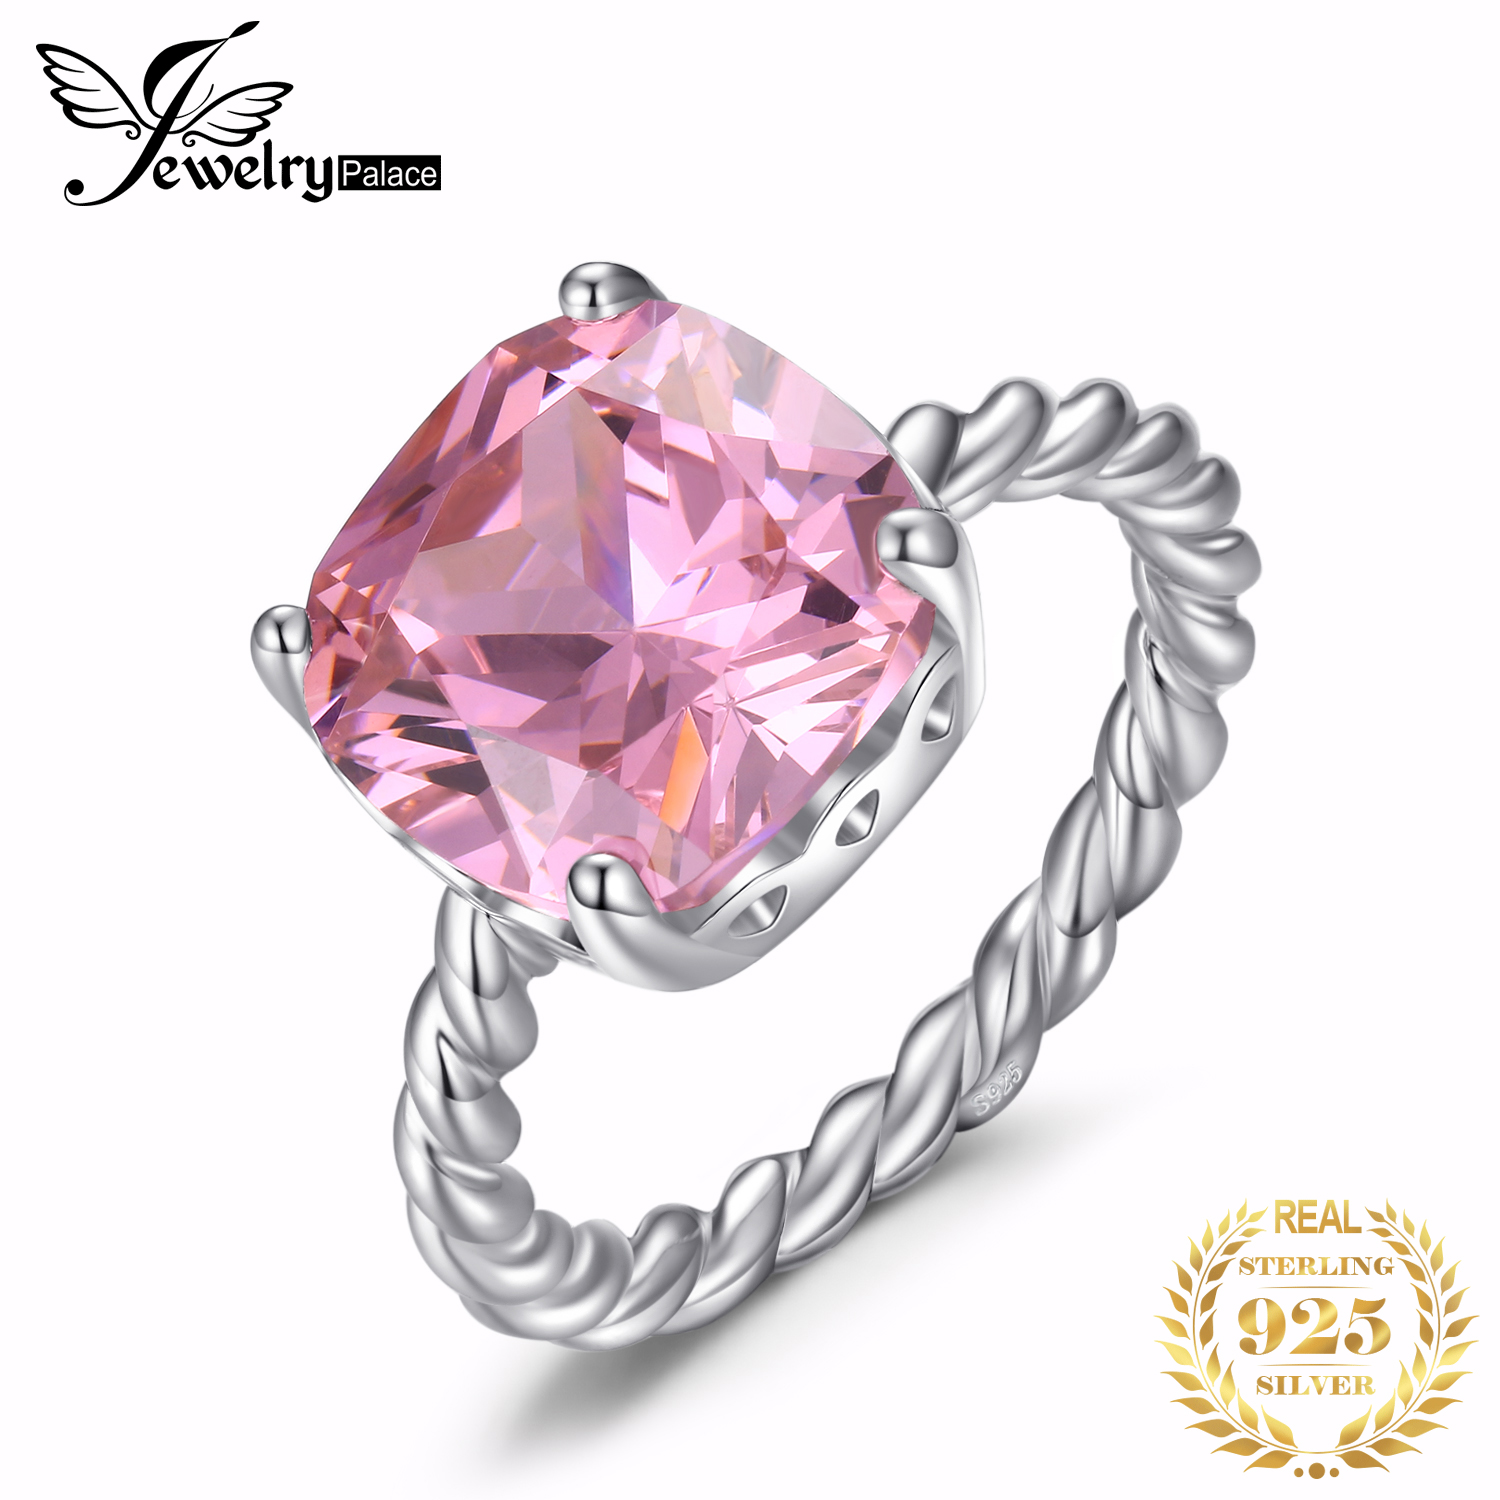 JewelryPalace Cushion Huge Pink CZ Ring 925 Sterling Silver Rings For Women Stack Engagement Ring Silver 925 Gemstones Jewelry